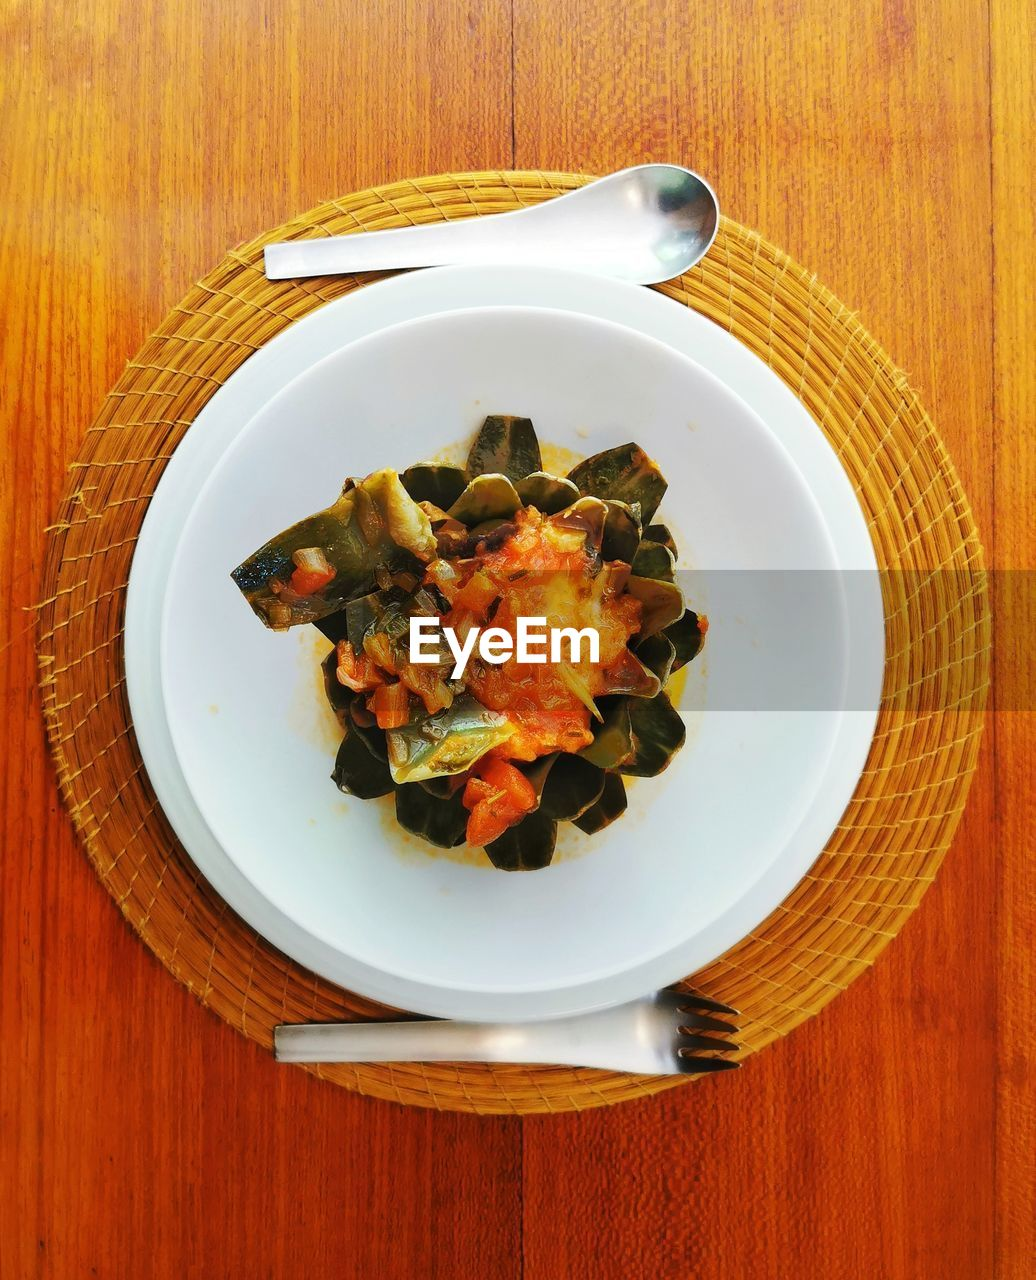 table, food, food and drink, plate, ready-to-eat, still life, wood - material, freshness, indoors, healthy eating, directly above, wellbeing, no people, serving size, high angle view, close-up, kitchen utensil, meal, vegetable, indulgence, temptation, crockery